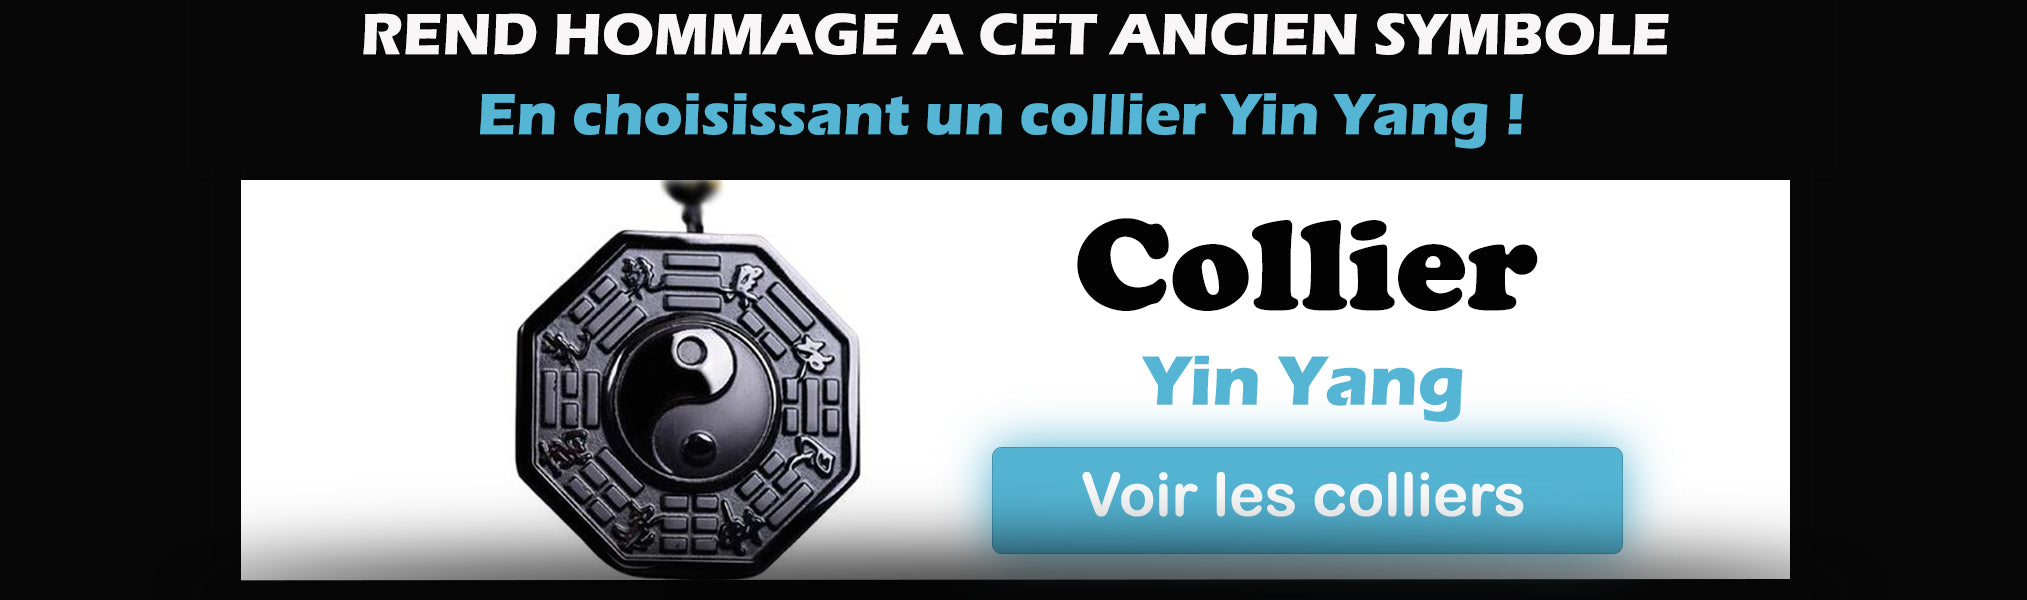 Collection collier yin yang